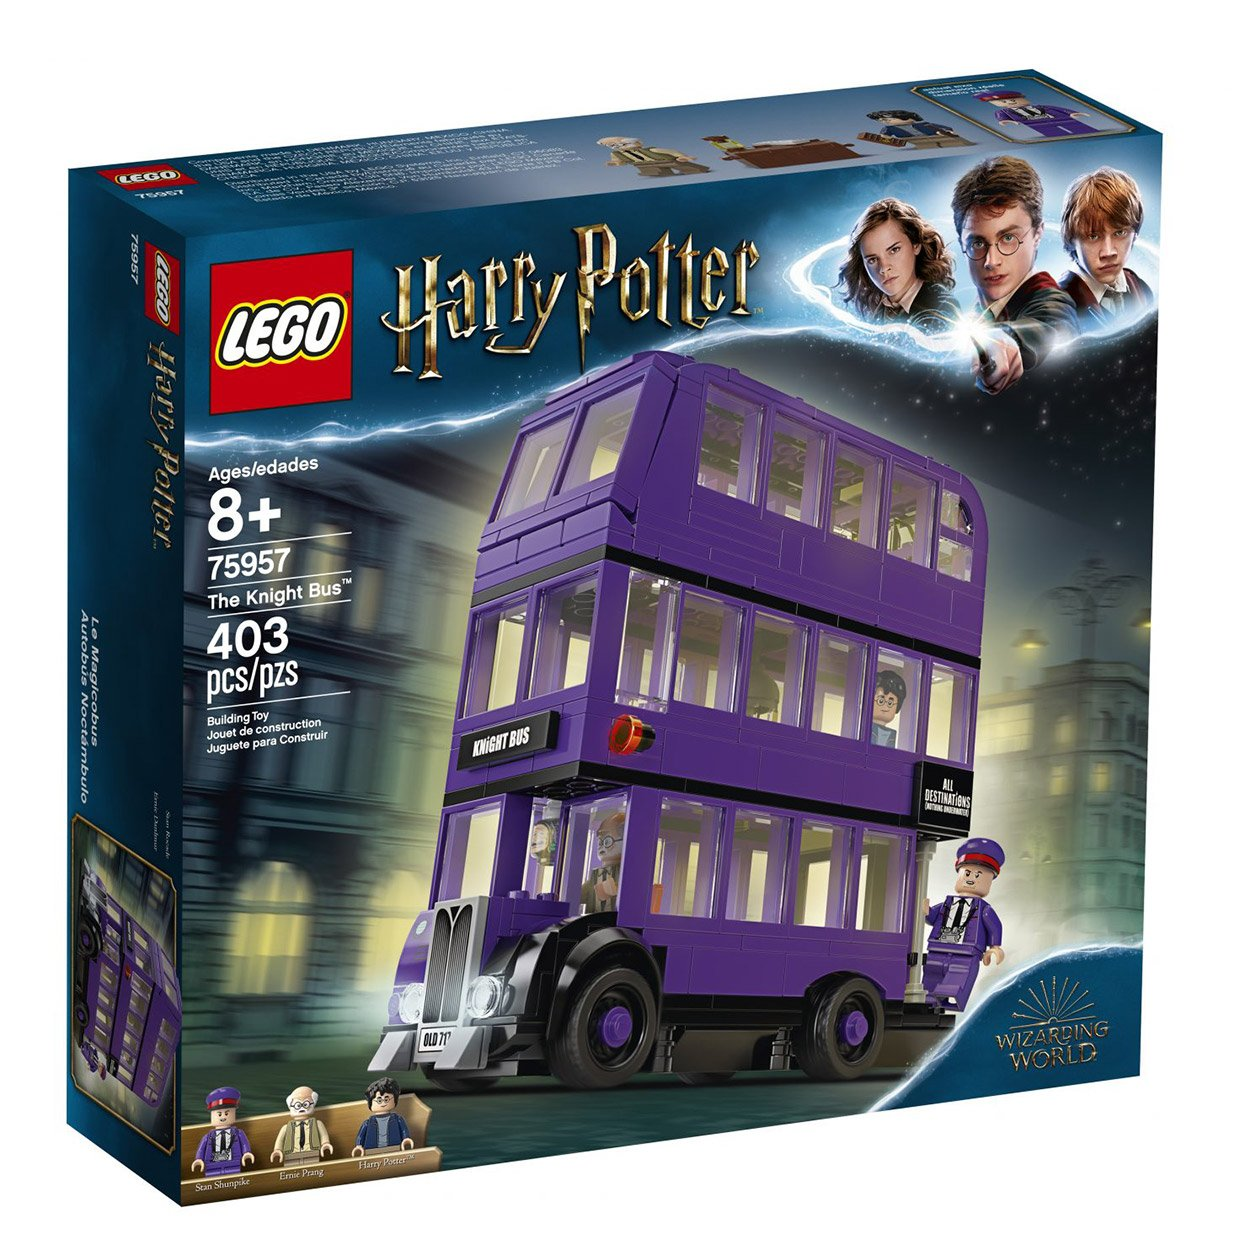 new lego harry potter kits land this august